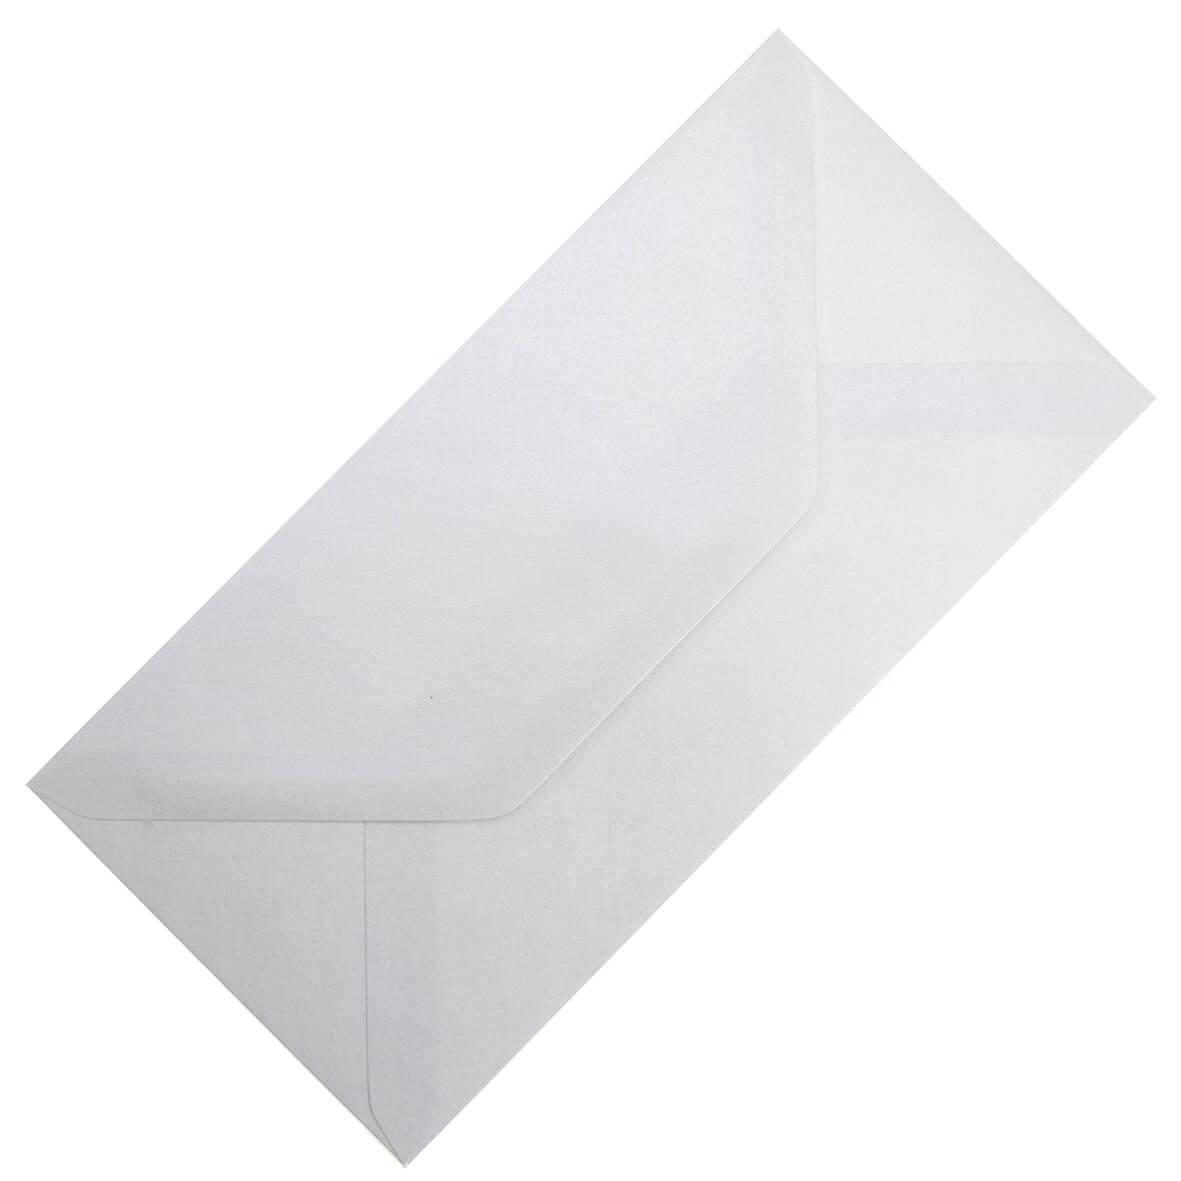 Crystal White DL Envelope Large Tall